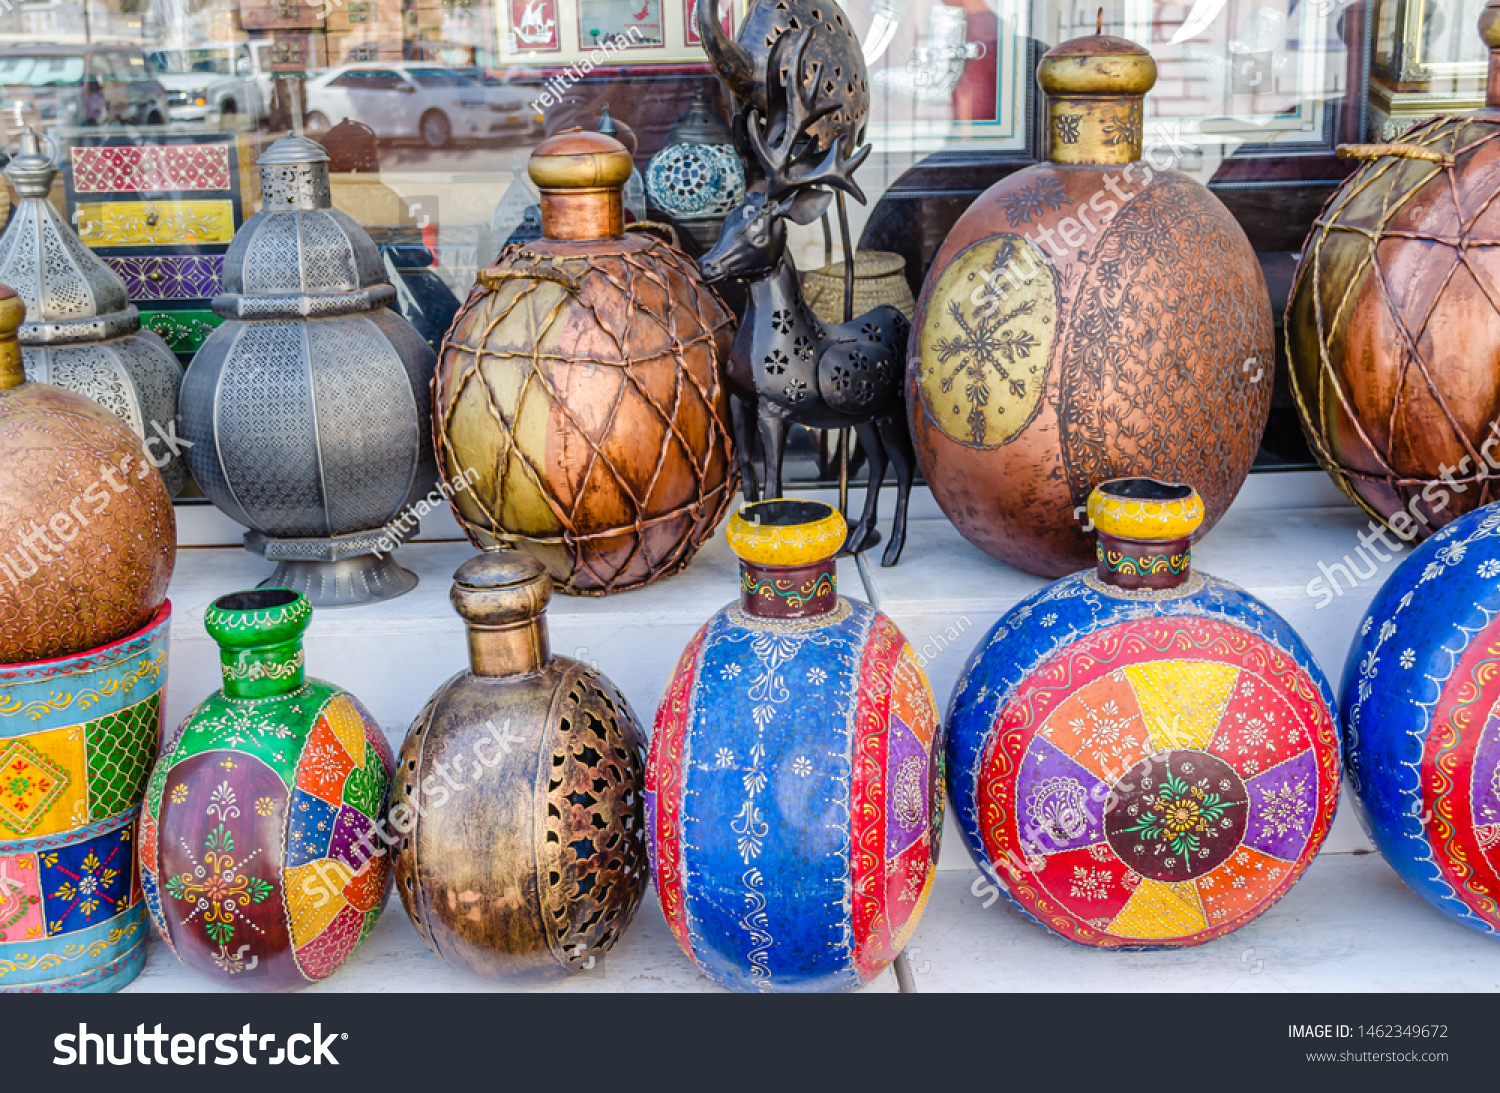 stock-photo-traditional-artistically-pai